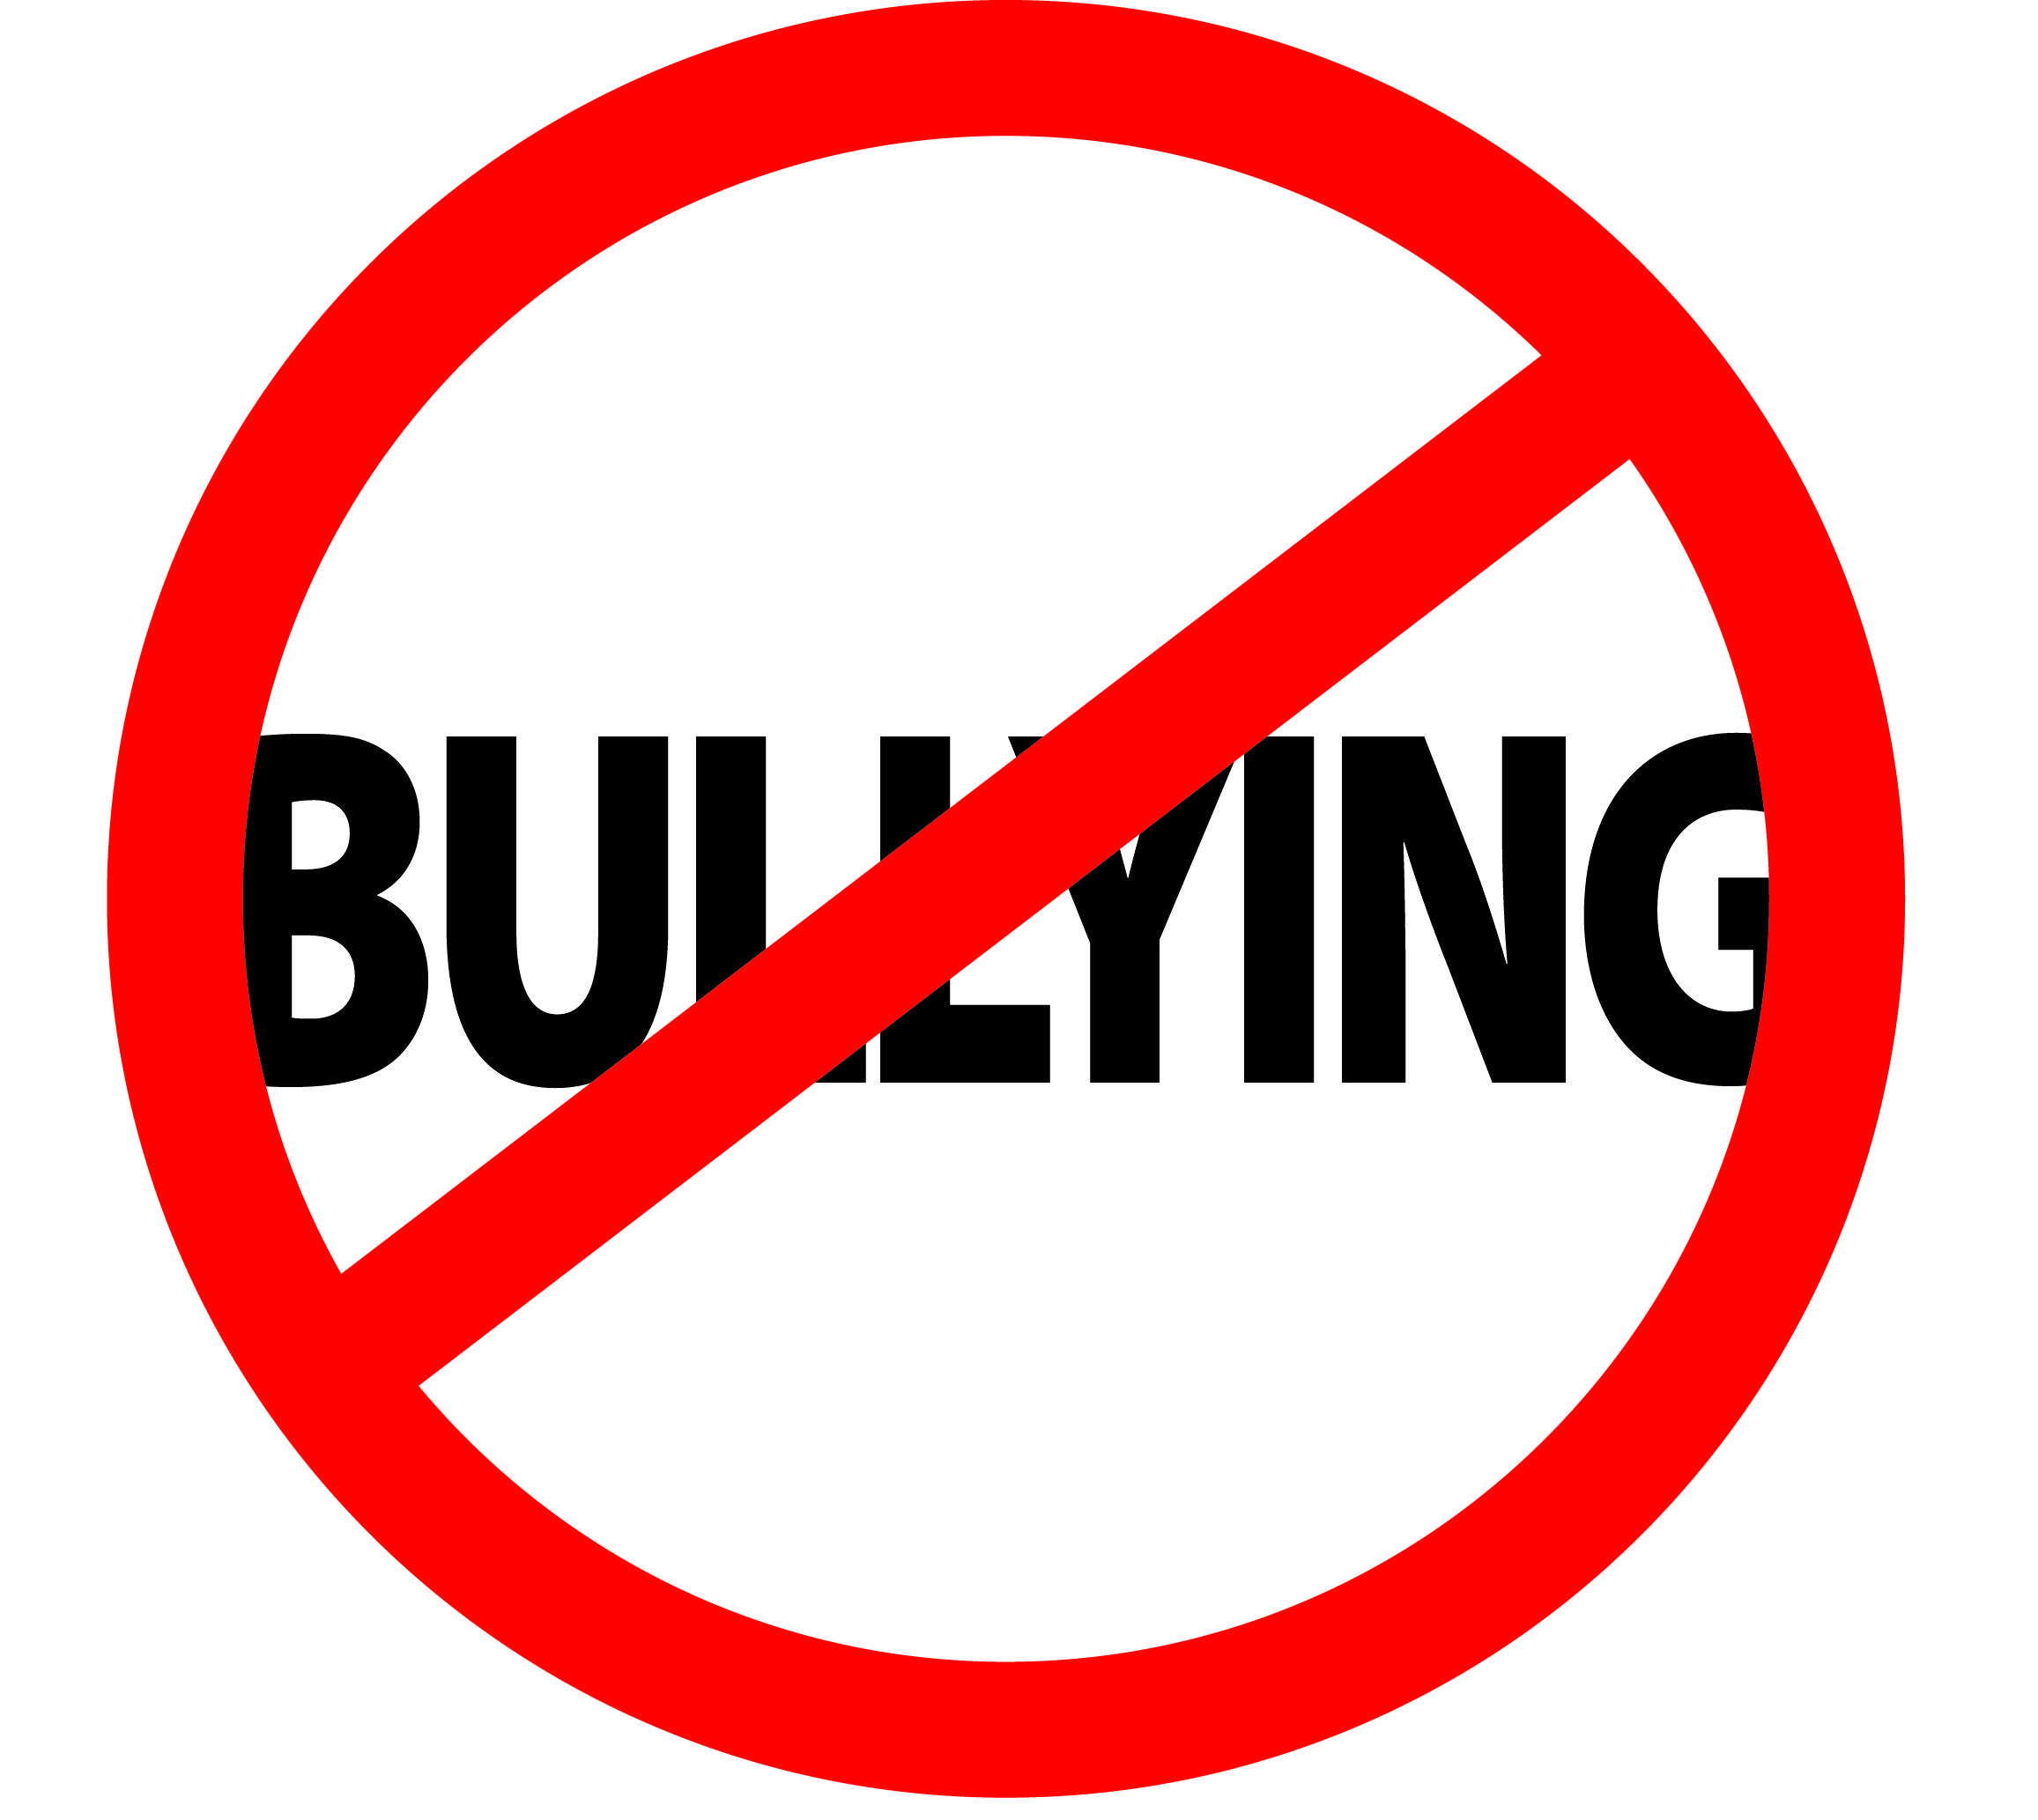 intersection fighting bullying in missouri today from the